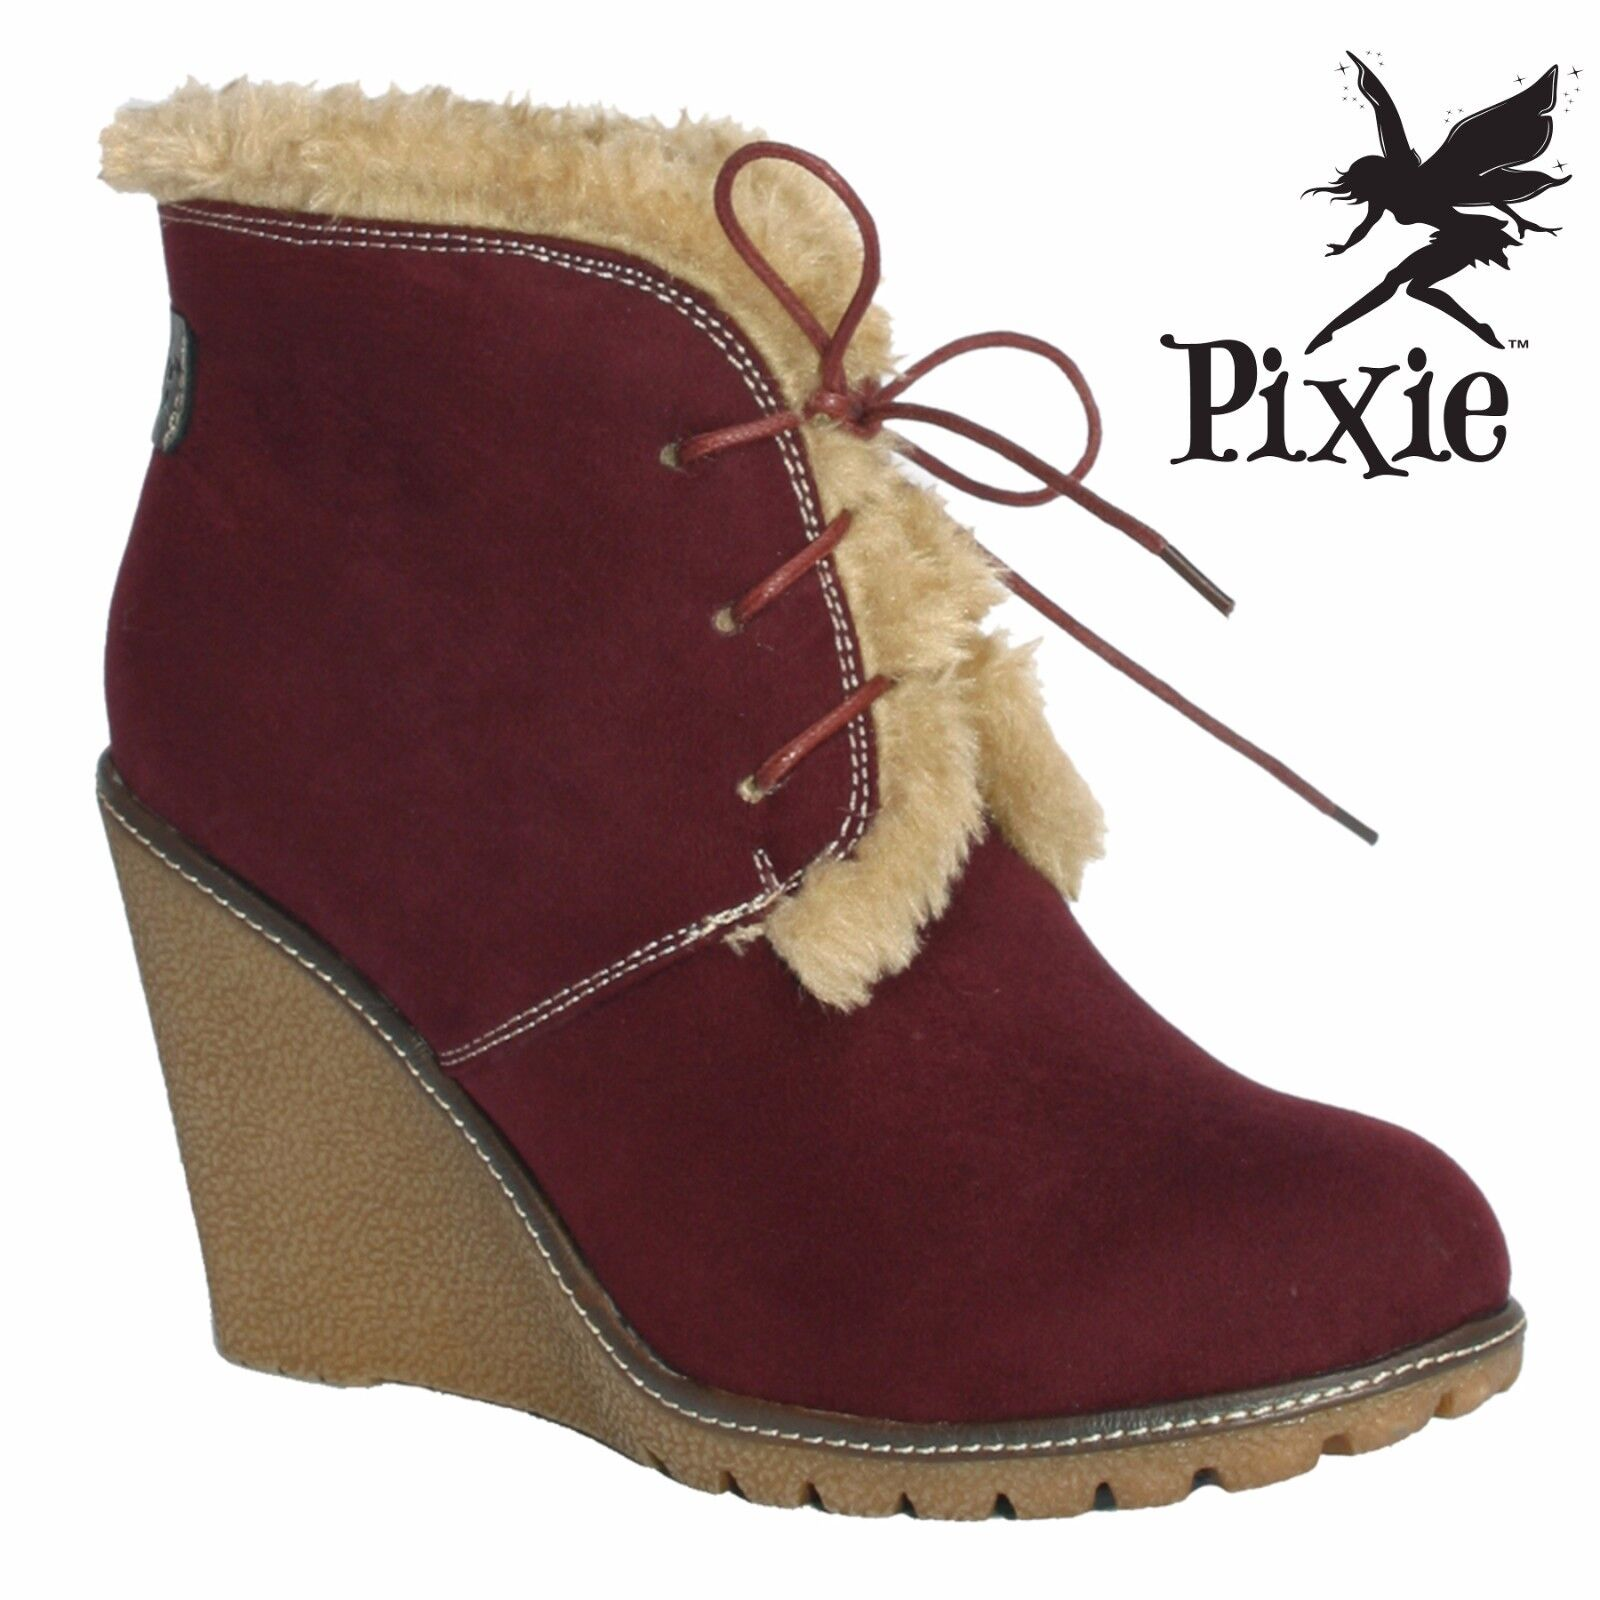 Pixie Footwear Emily - Ladies Boots. UK sizes 3 - Emily 8 Brand New In Box 447c6d